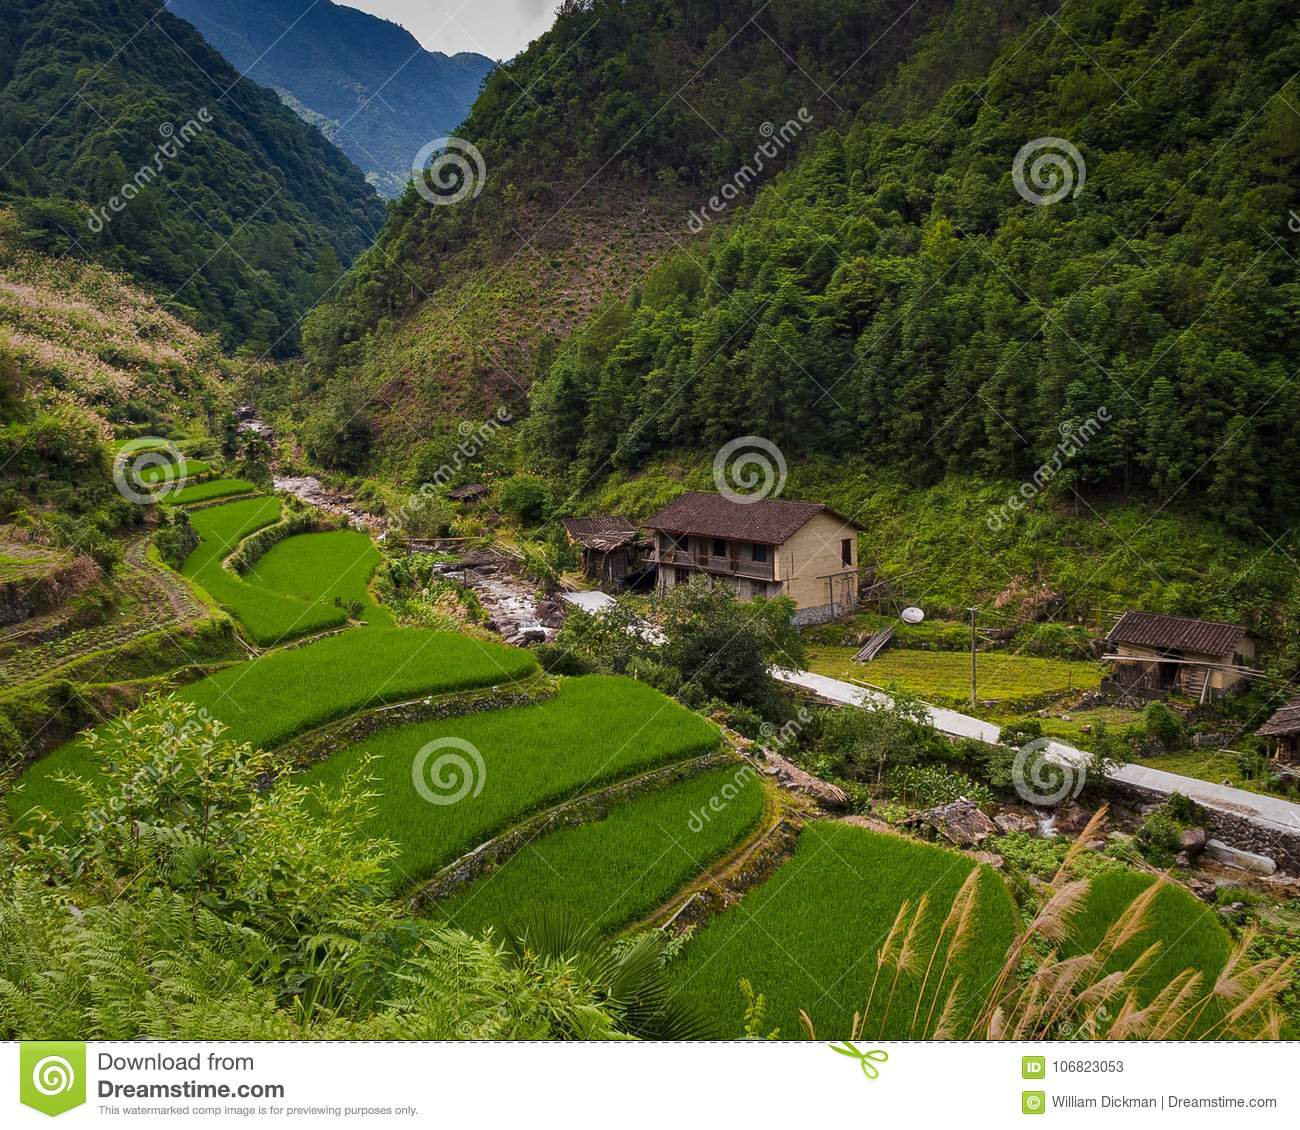 Valley Farm in China